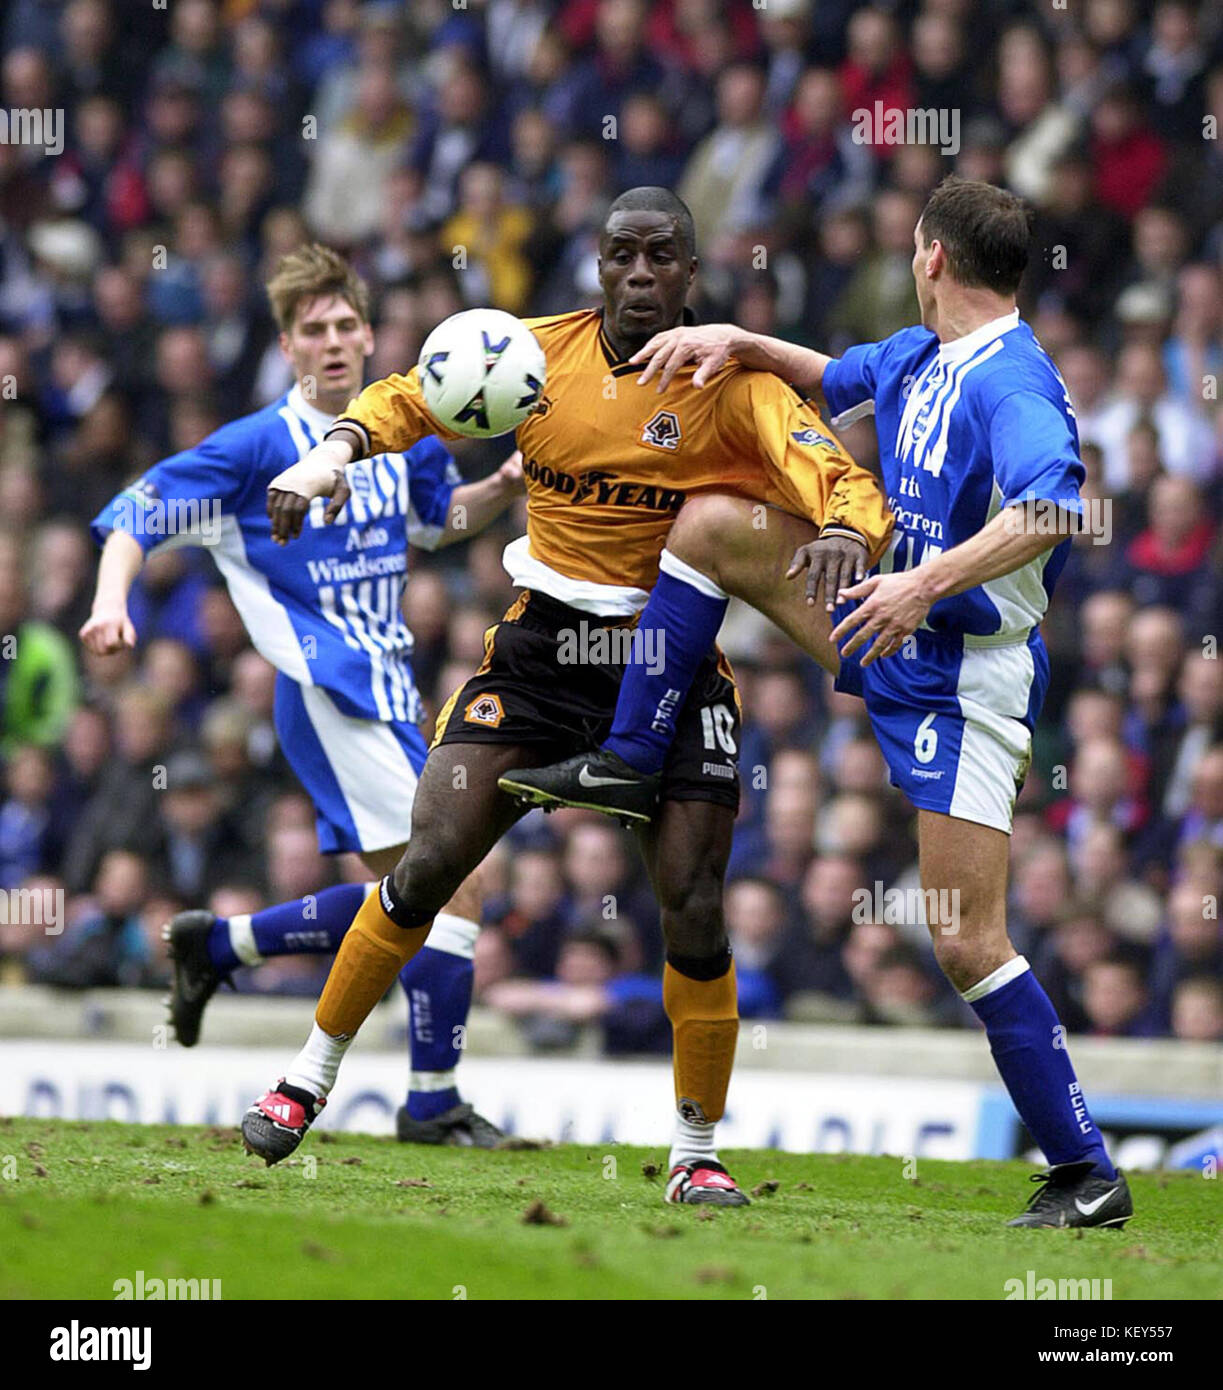 Birmingham City v Wolverhampton Wanderers football match Ade Akinbiyi and David Holdsworth - Stock Image